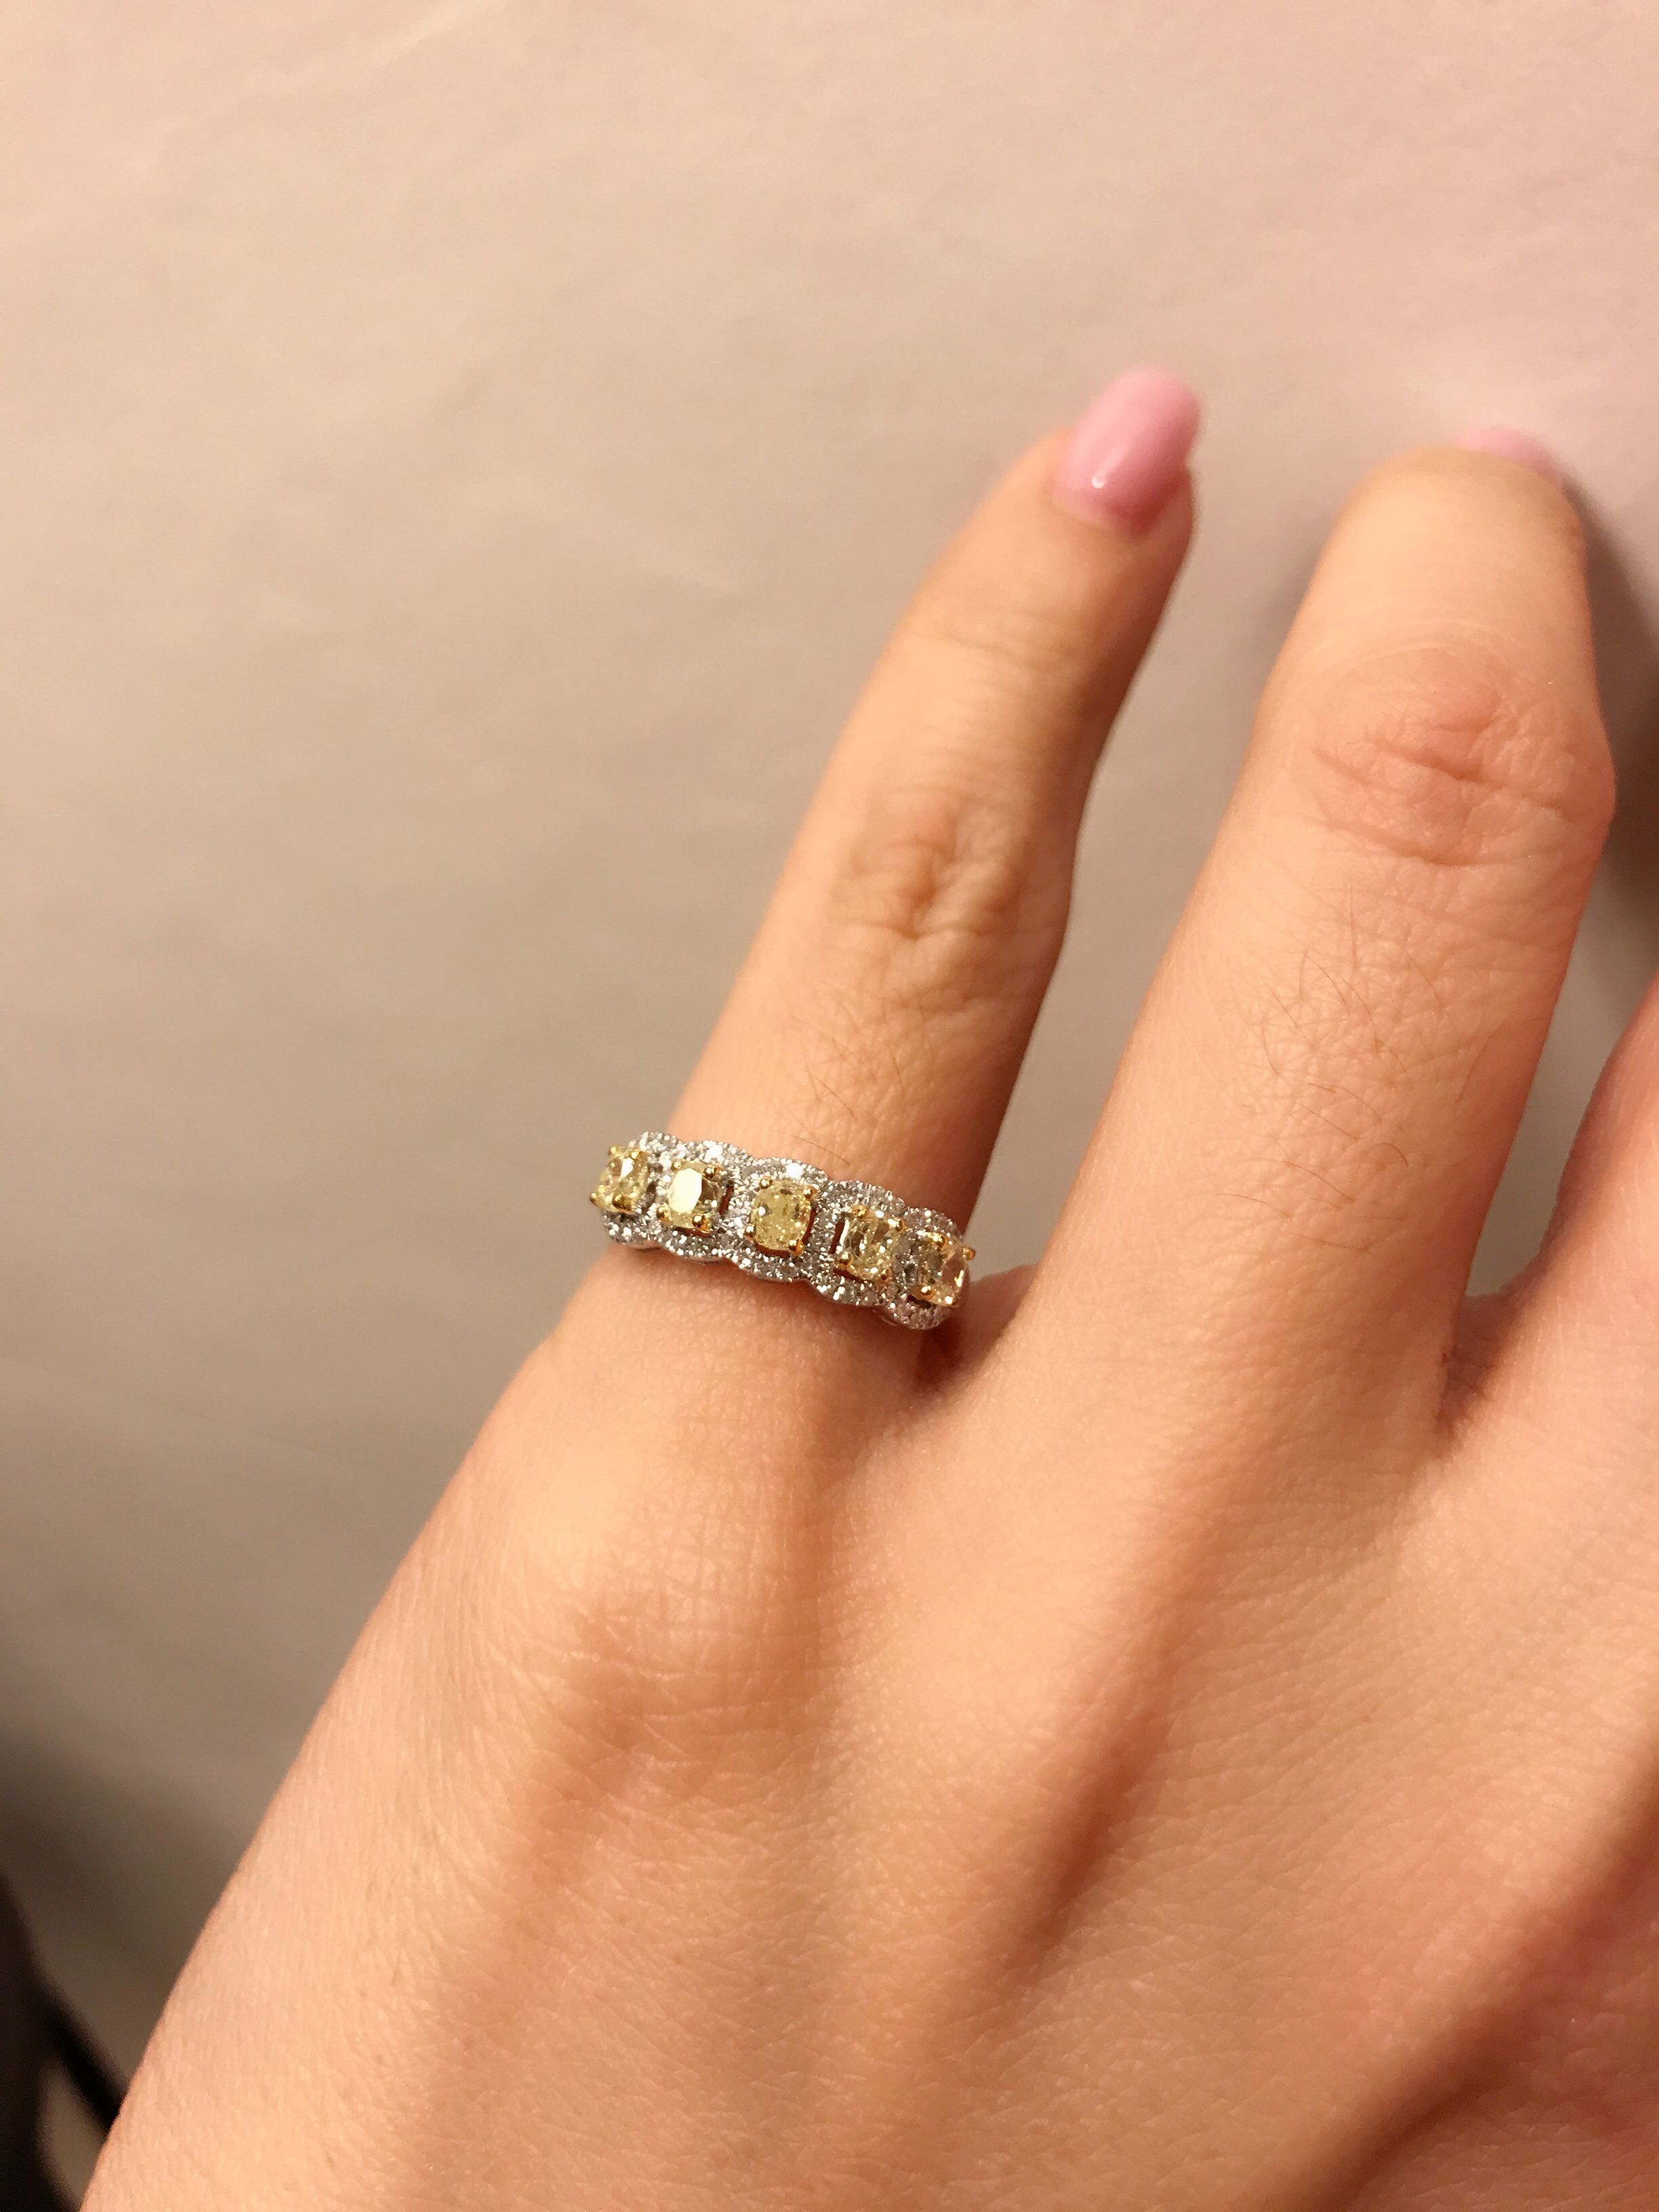 Fancy Yellow Diamond Baby Finger Ring Fancy Rings Colored Diamond Rings Wedding Ring Finger